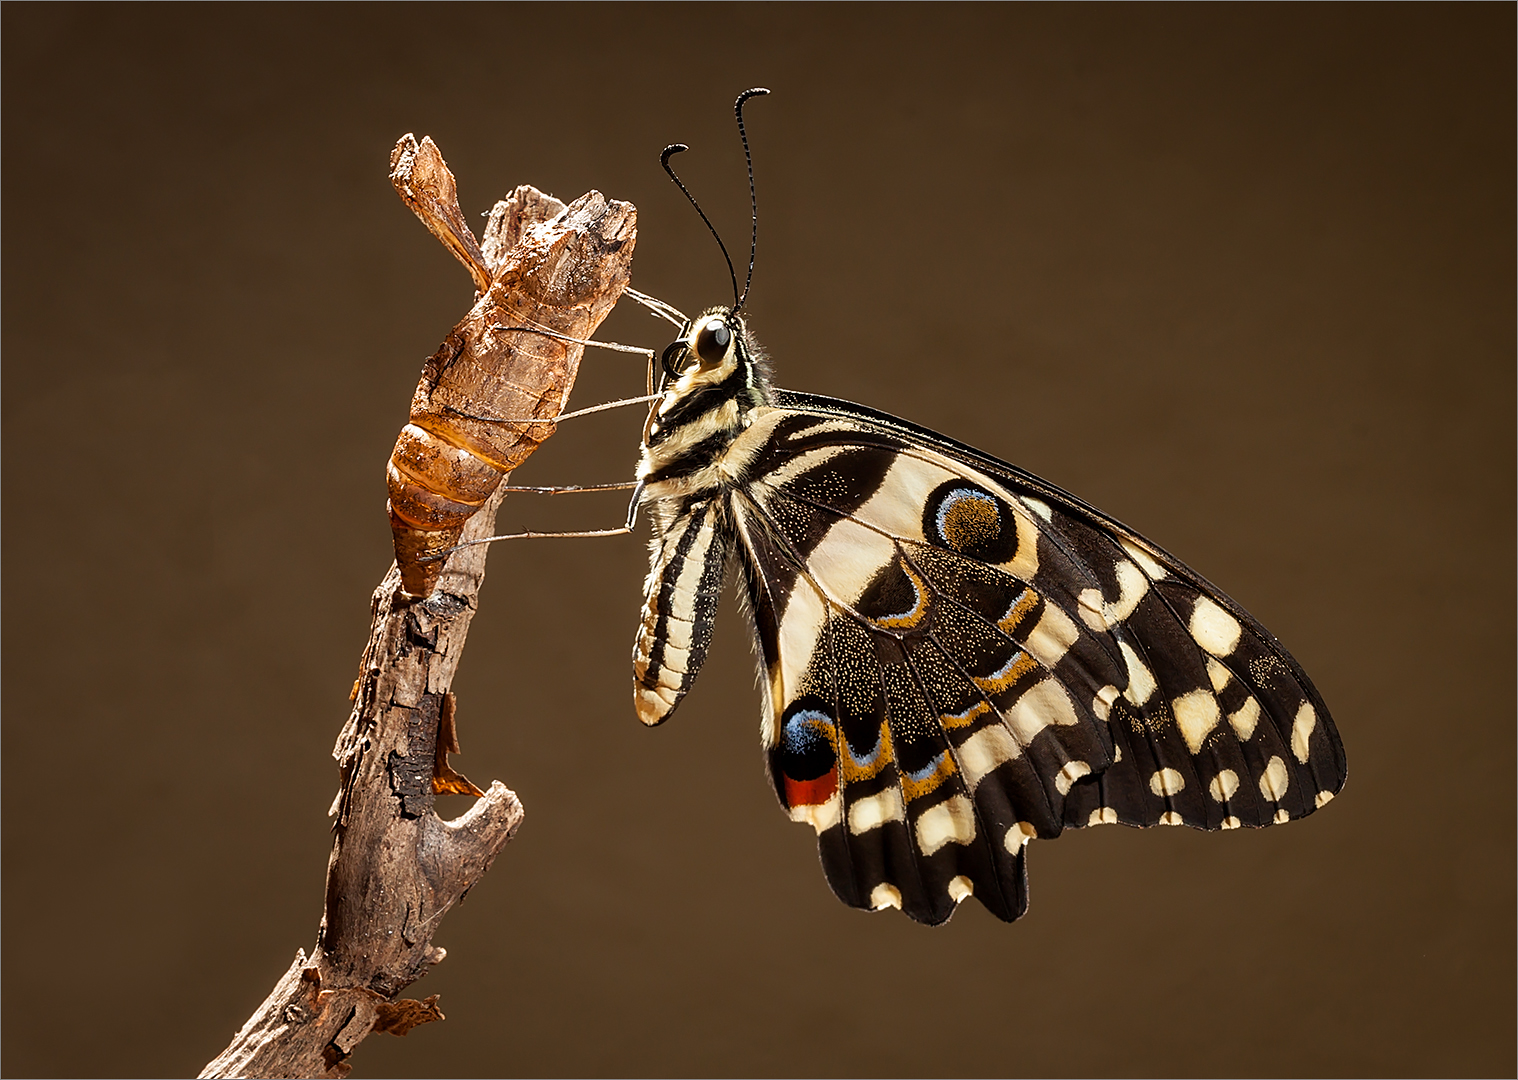 Freshly Emerged Swallowtail by Eddie Reinecke